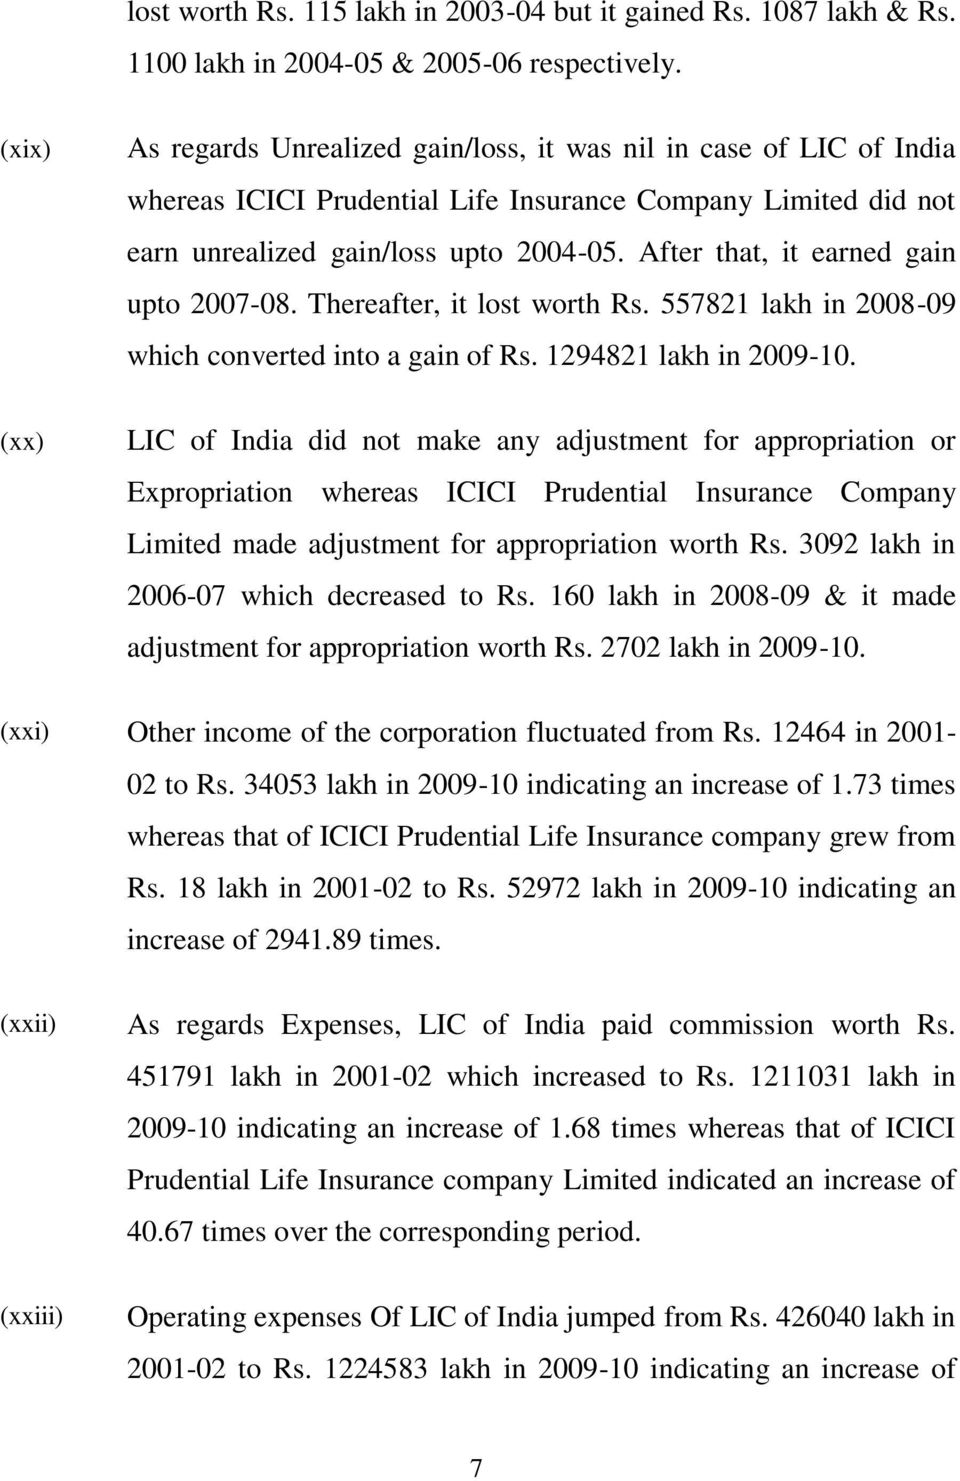 After that, it earned gain upto 2007-08. Thereafter, it lost worth Rs. 557821 lakh in 2008-09 which converted into a gain of Rs. 1294821 lakh in 2009-10.